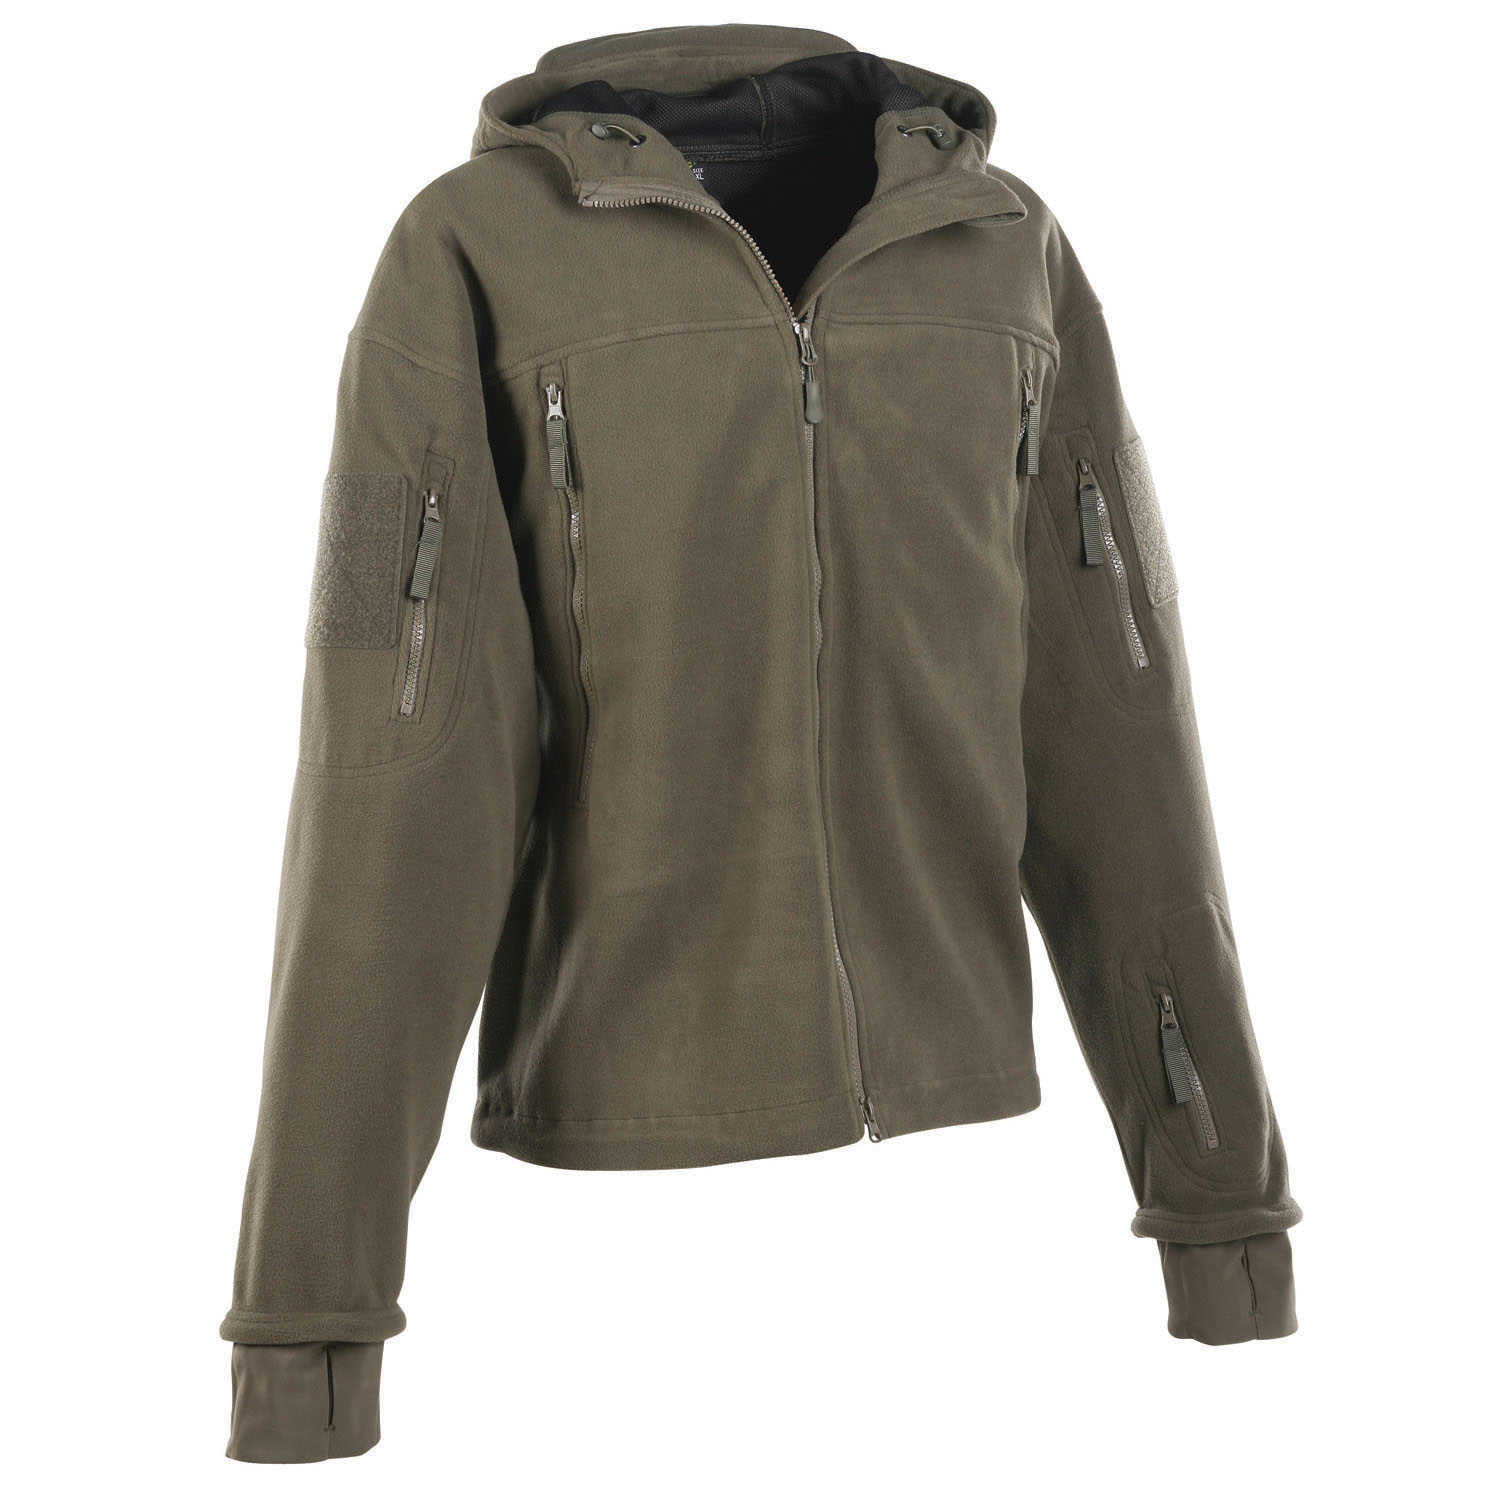 Sierra Fleece Jacket with Hood